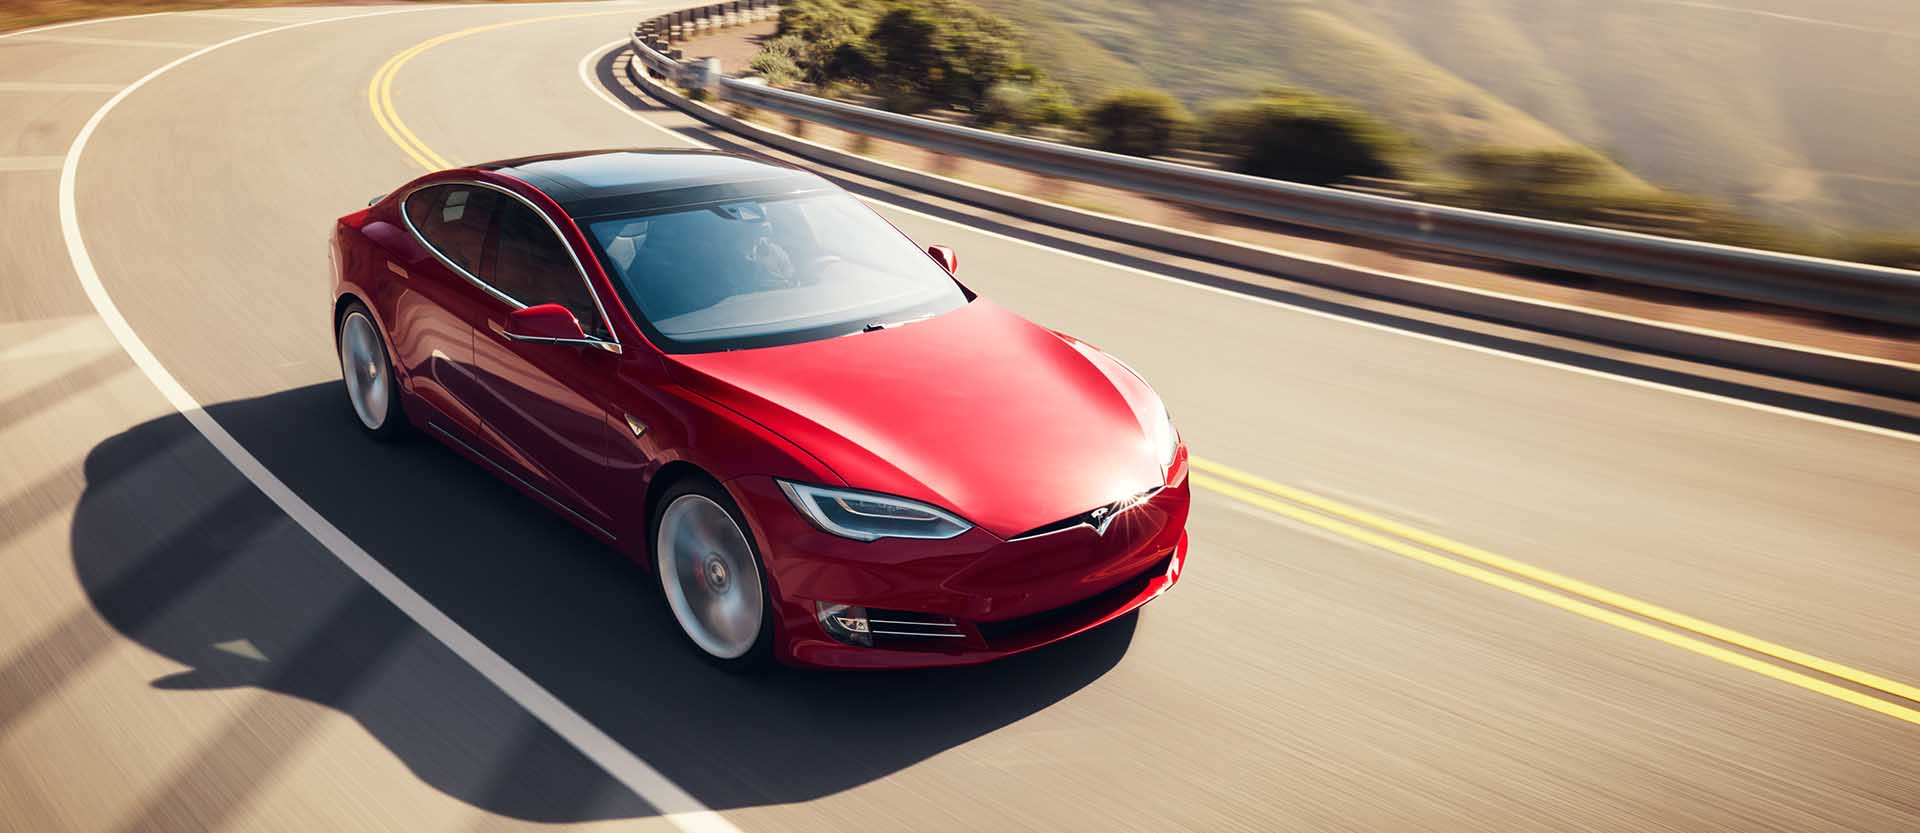 Tesla improves Model S, Model X acceleration with Cheetah Stance mode